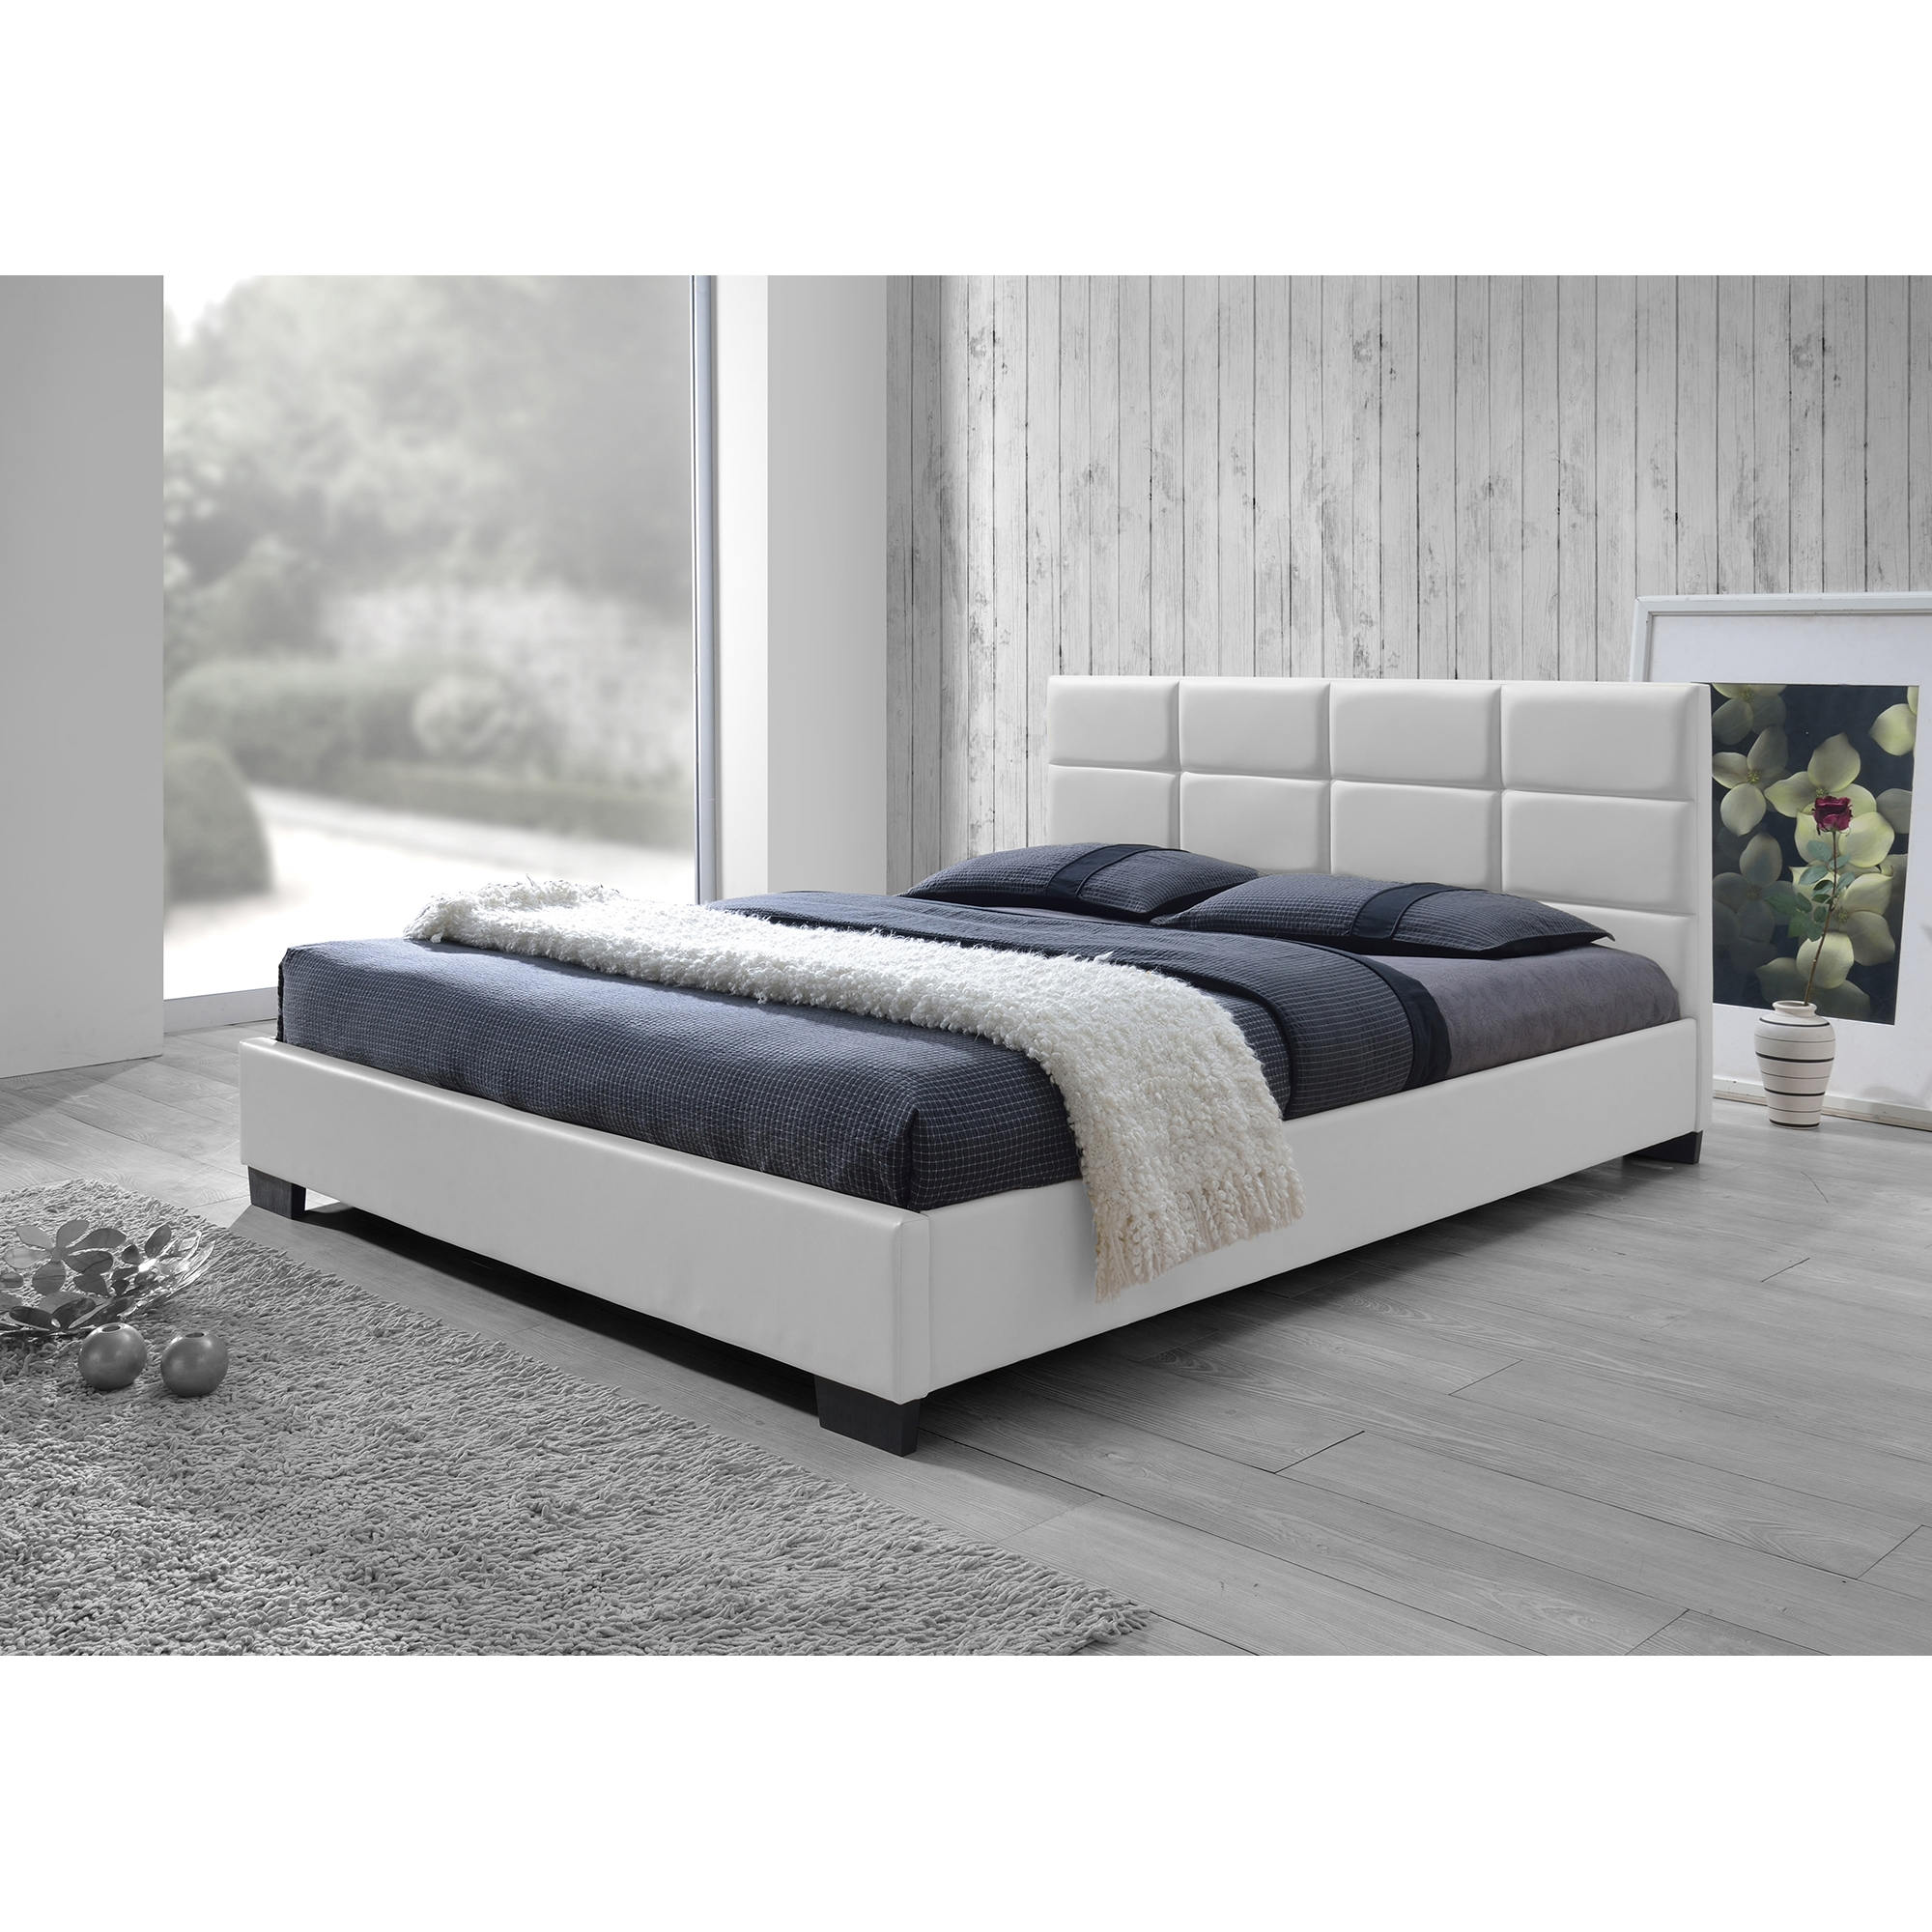 ... Baxton Studio Vivaldi Modern And Contemporary White Faux Leather Padded  Platform Base Queen Size Bed Frame